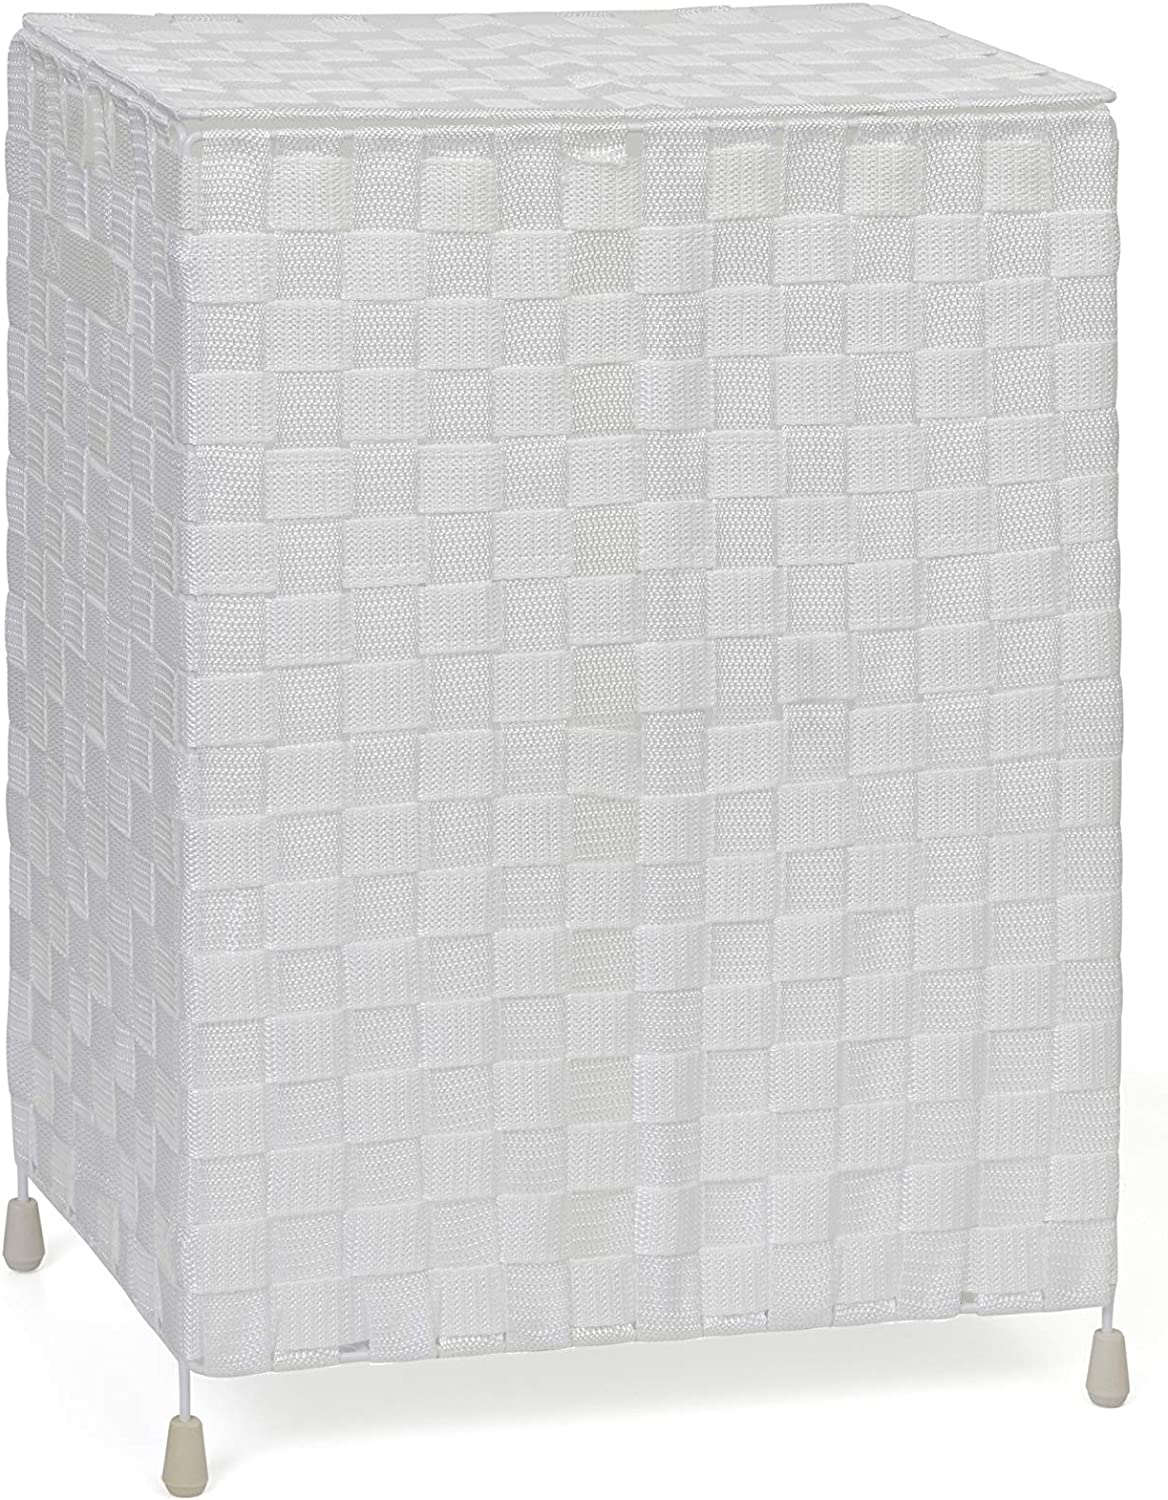 Laundry Basket Hamper– Washing Bin with Lid & Insert Handle for Easy Carrying – Convenient Storage Organizer Box for Clothes, Toys –White - by Arpan (White)